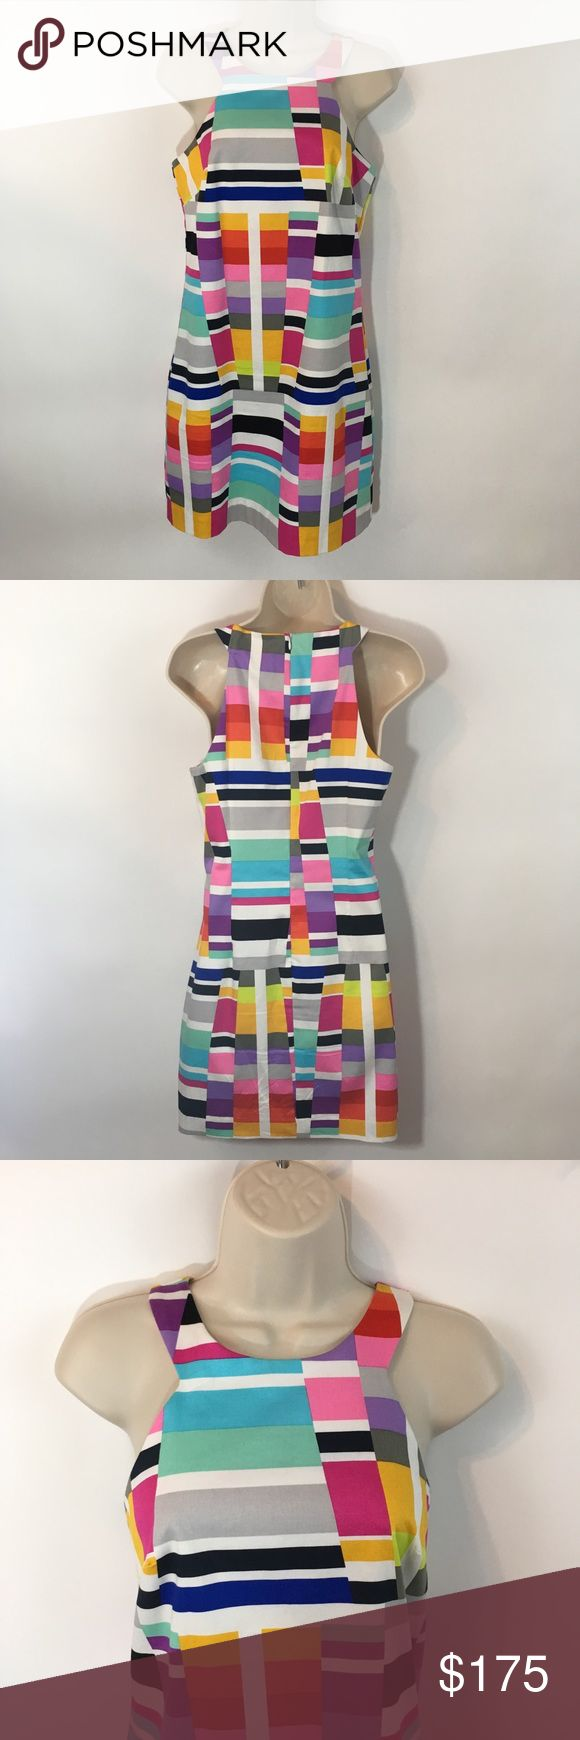 • trina turk colorful block halter midi dress 2 • White Trina Turk midi dress with black & multi colored block pattern. Halter style neckline. Size 2. Nwt.   Tags: colorful, new with tags, summer, spring, rainbow, fun, pastel, bright Trina Turk Dresses Midi